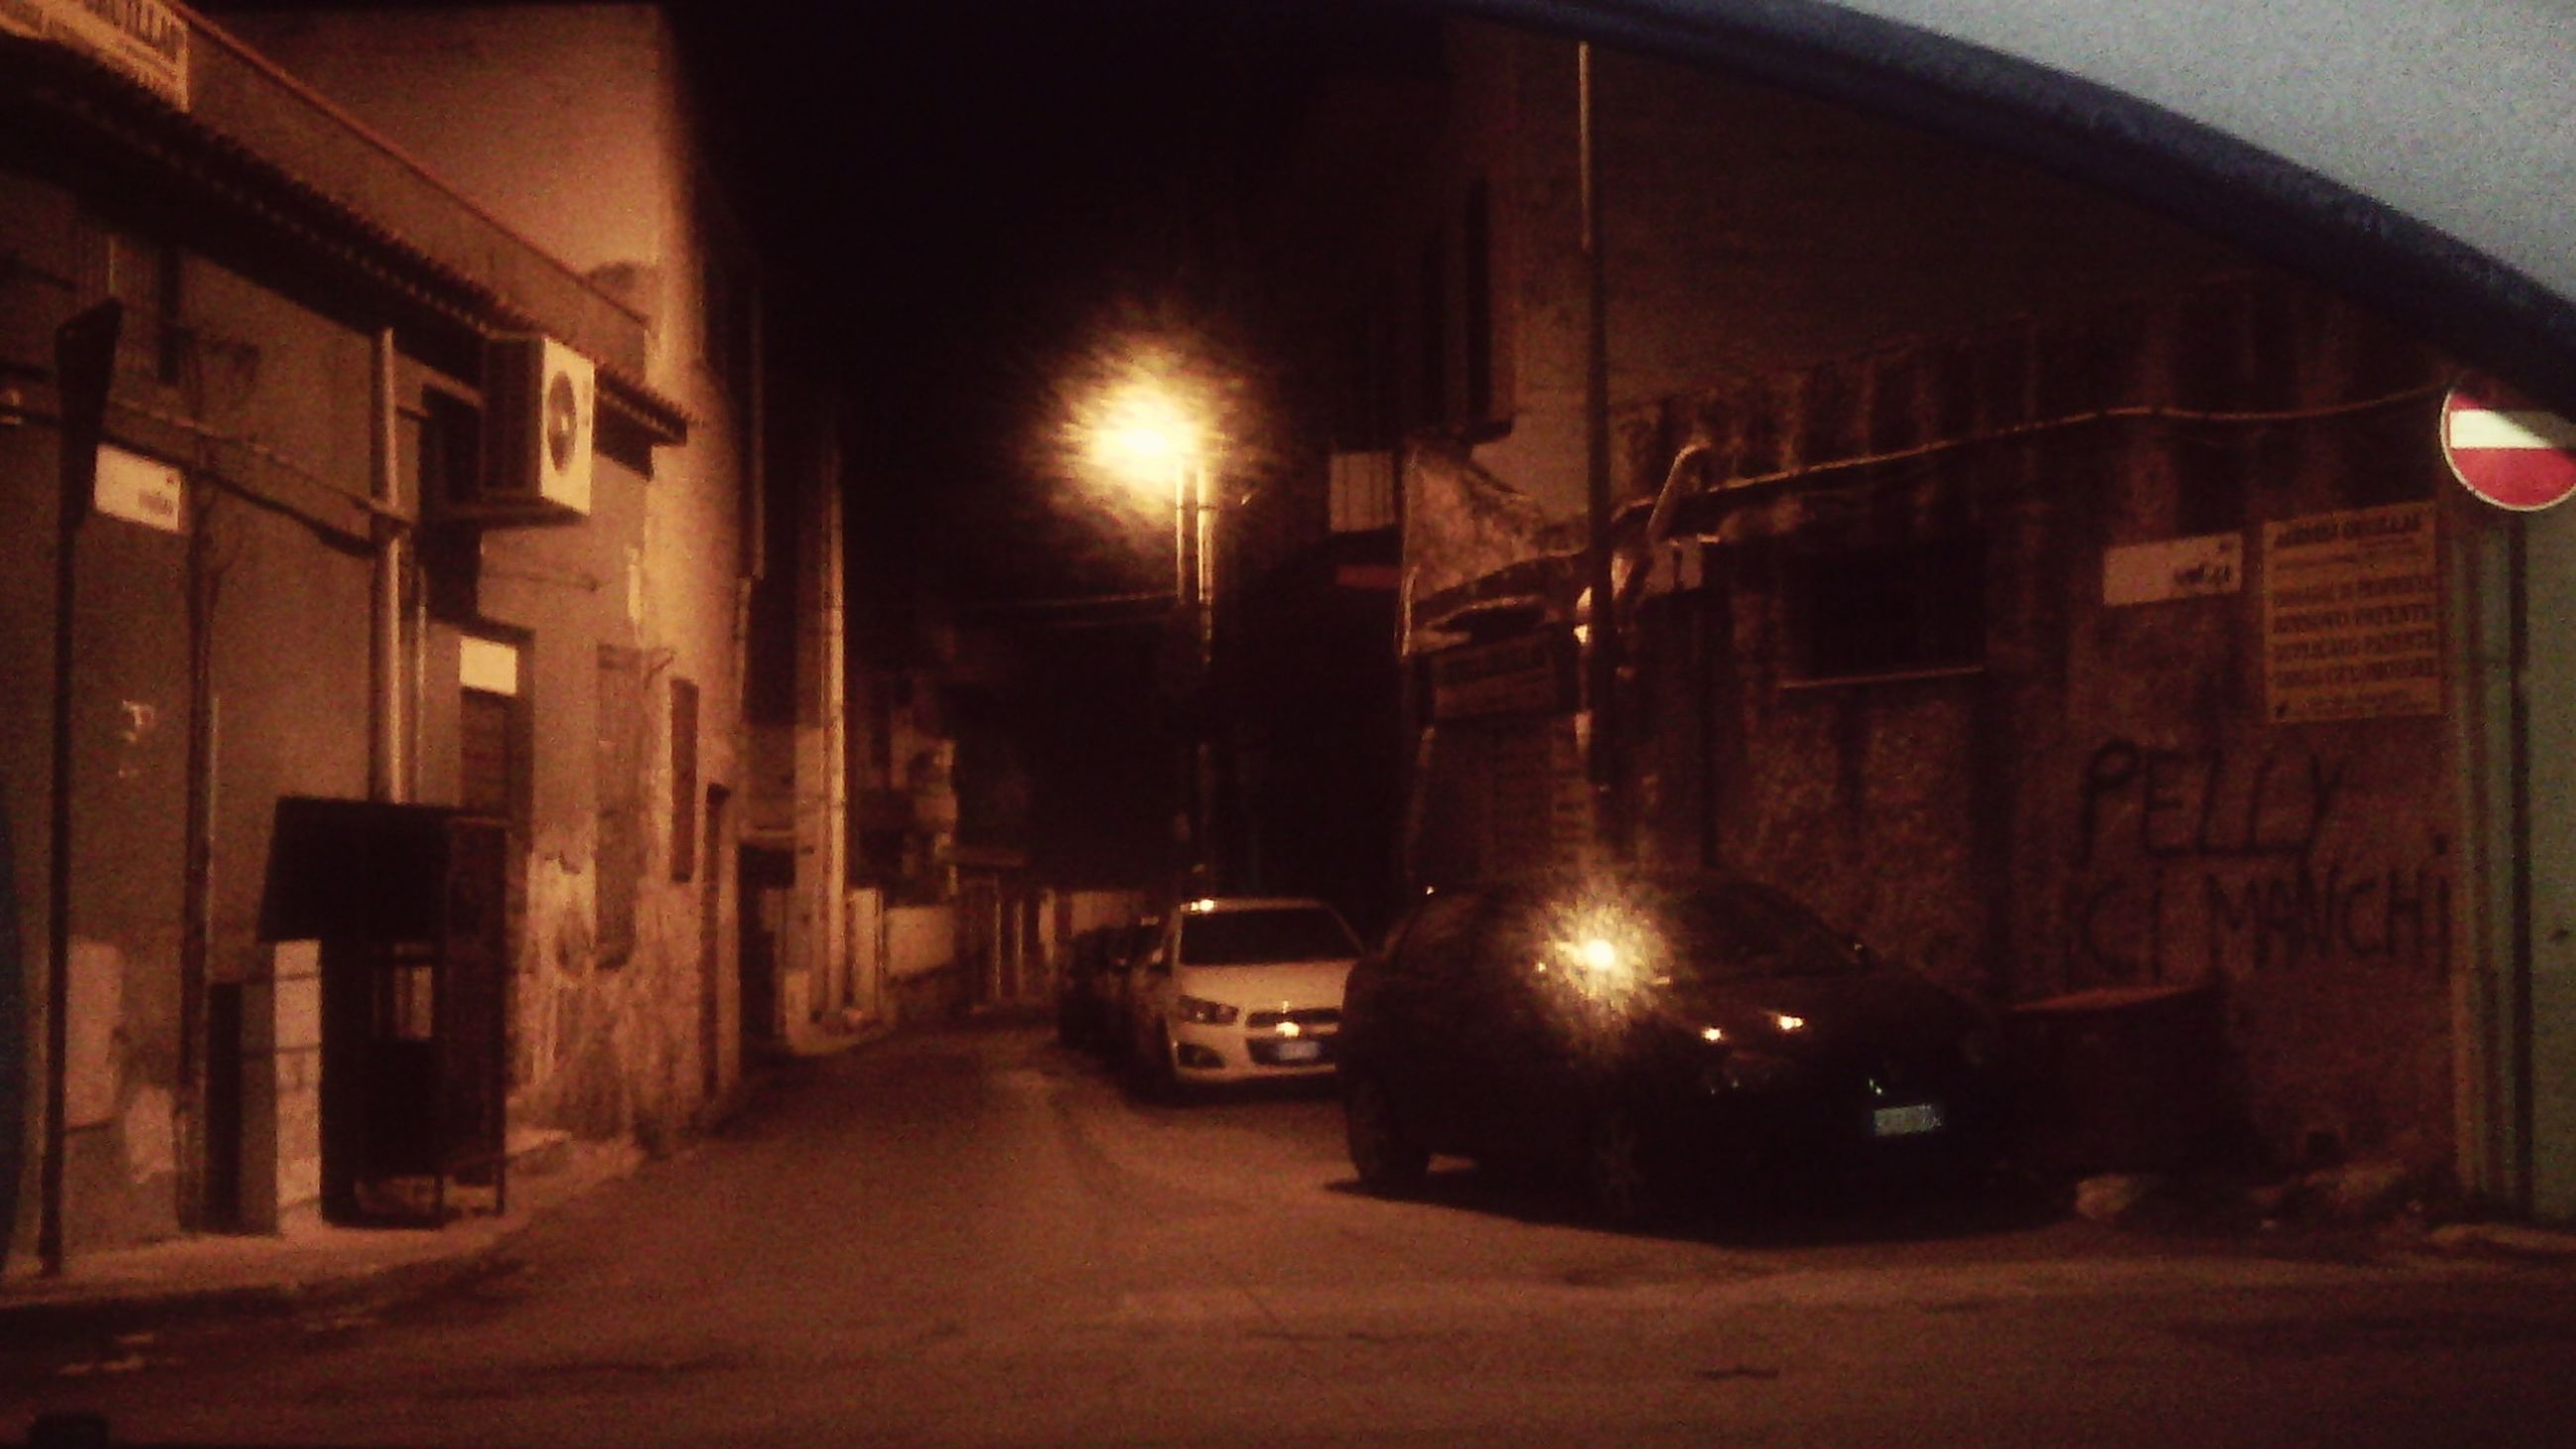 architecture, built structure, illuminated, the way forward, night, building exterior, transportation, street, road, diminishing perspective, street light, building, city, vanishing point, lighting equipment, car, land vehicle, outdoors, no people, tunnel